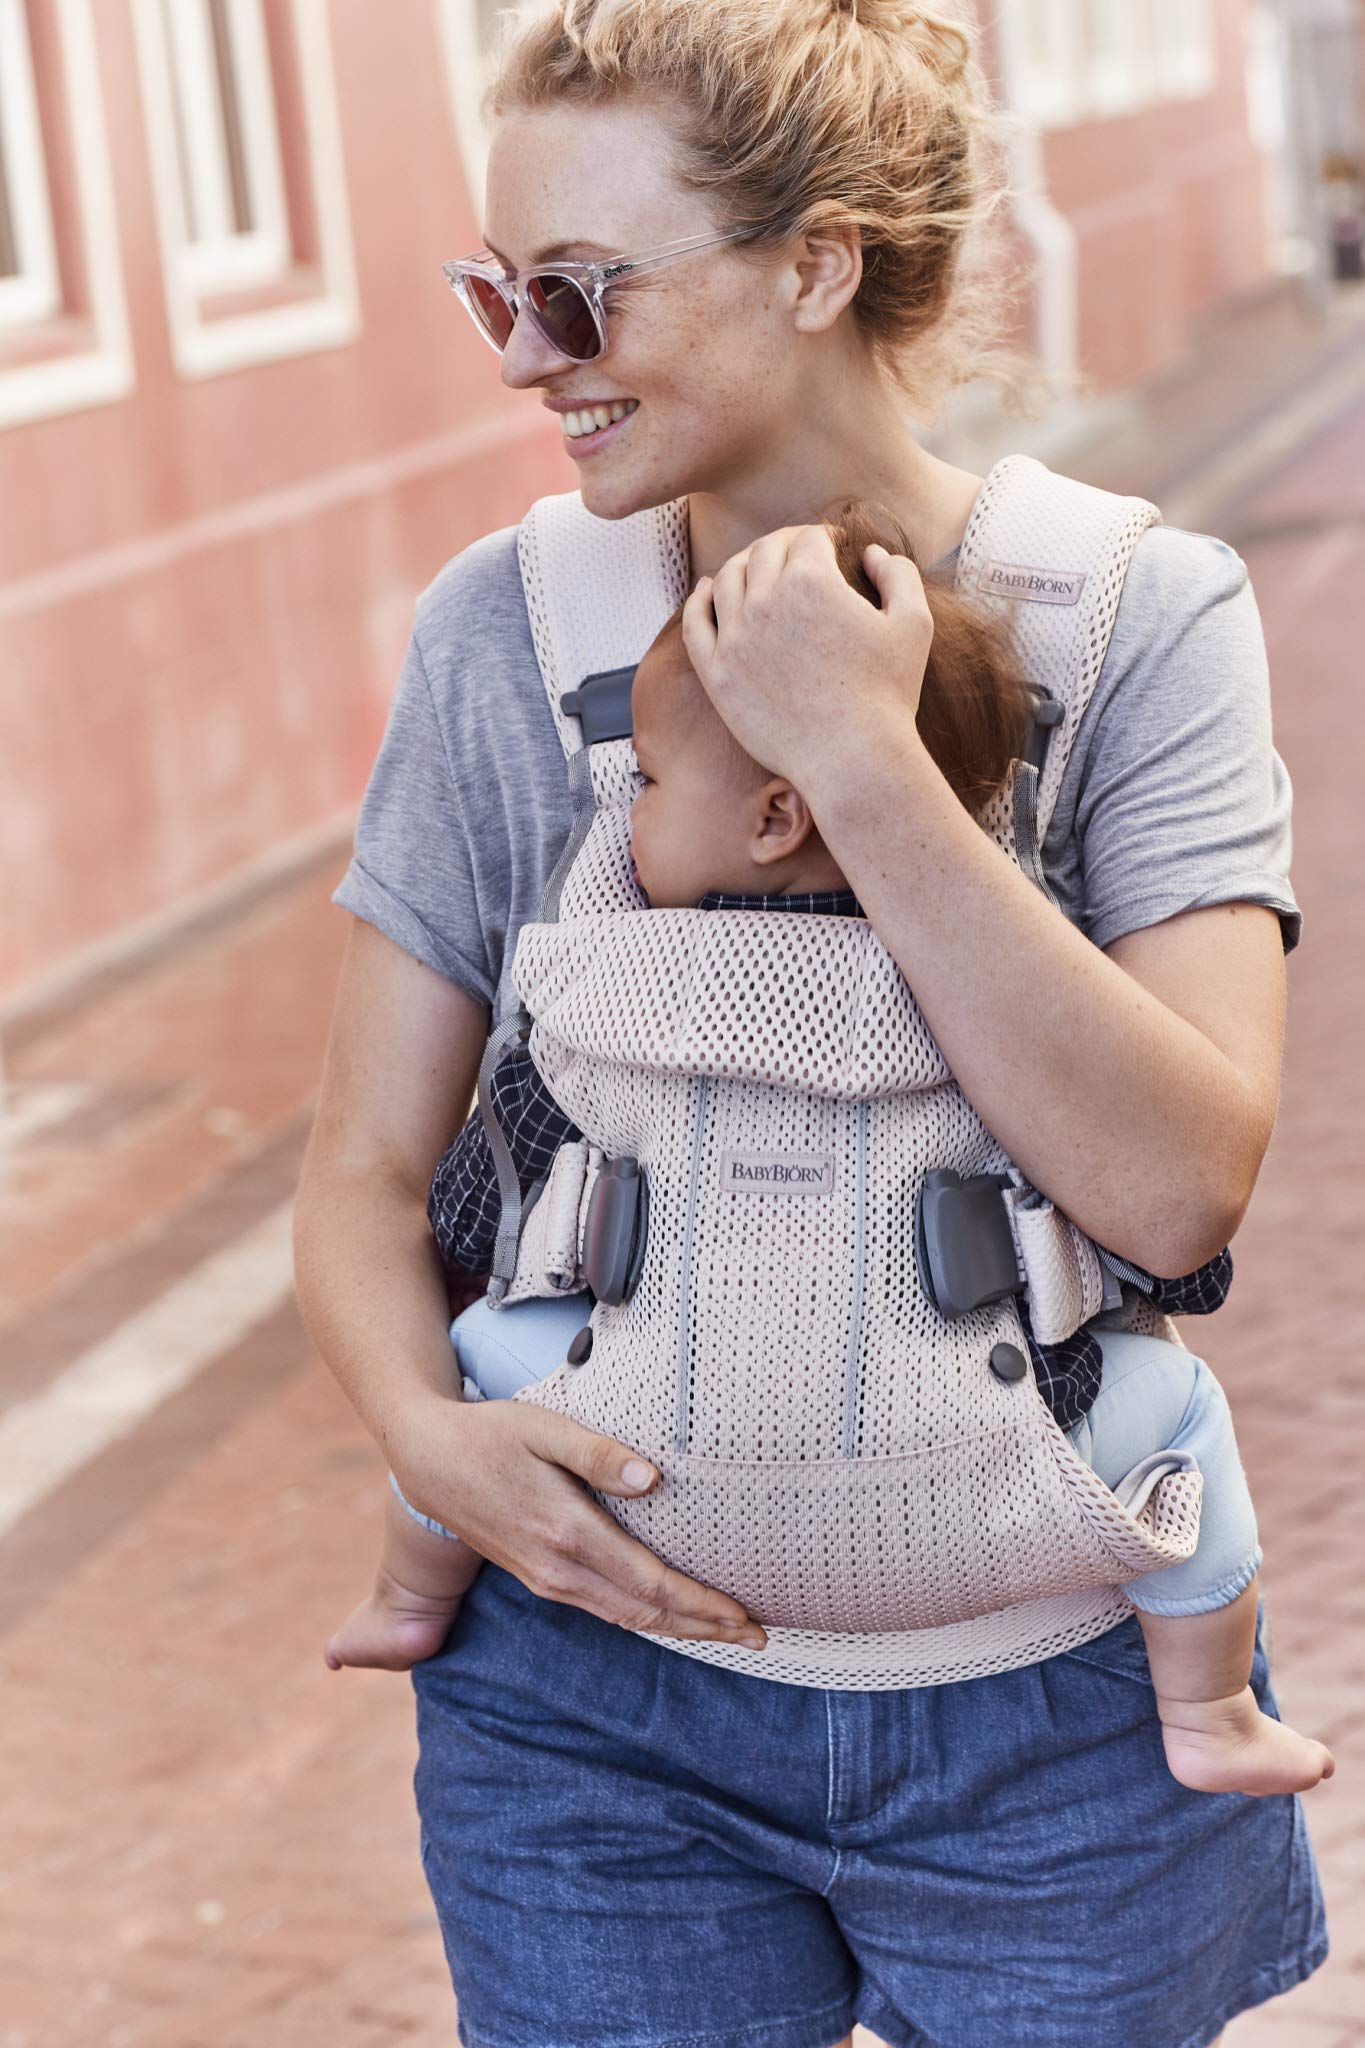 BABYBJÖRN Baby Carrier One, Cotton Mix, Black, 2018 Edition Baby Bjorn The latest version with soft and breathable mesh that dries quickly Ergonomic baby carrier with excellent support 4 carrying positions: facing in (two height positions), facing out or on your back 4